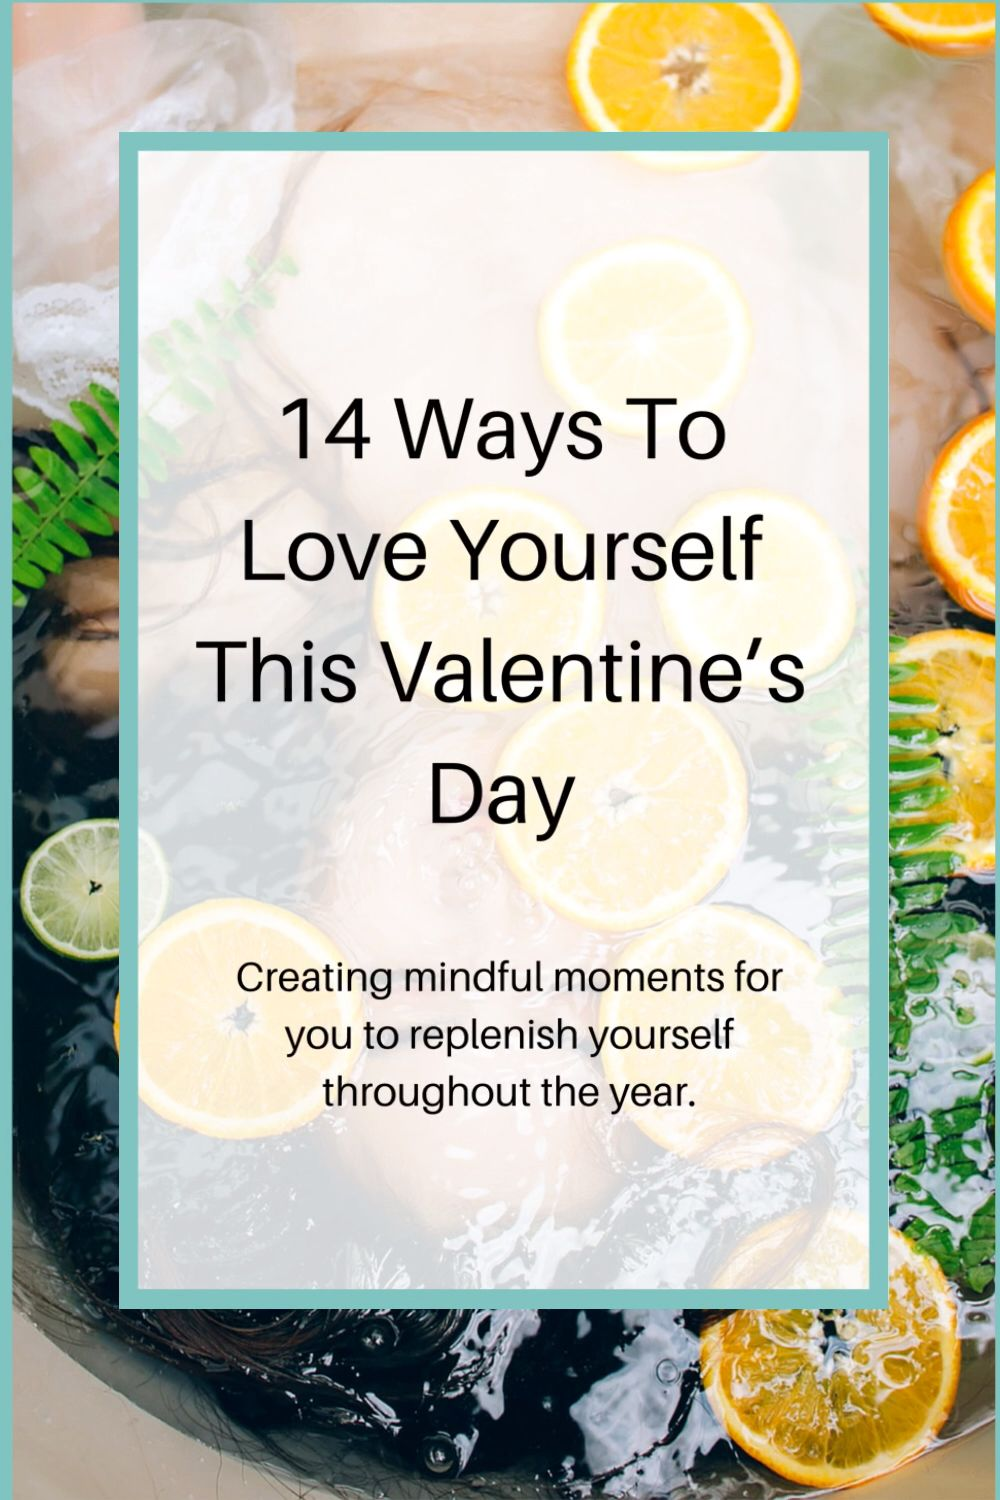 You don't have to be in a relationship in order to receive appreciation or love. In fact, every healthy relationship requires a healthy self esteem and sense of self worth. When you practice selfcare and self-love you set the standard for how you will allow yourself to be treated. Read the entire post for 14 helpful tips to get you on the right path! #selfcare #selflove #selfimprovement #valentinesday #valentinesdaytreats #selfcaretips #selflovetips #womenswellness #healthylifestyletips